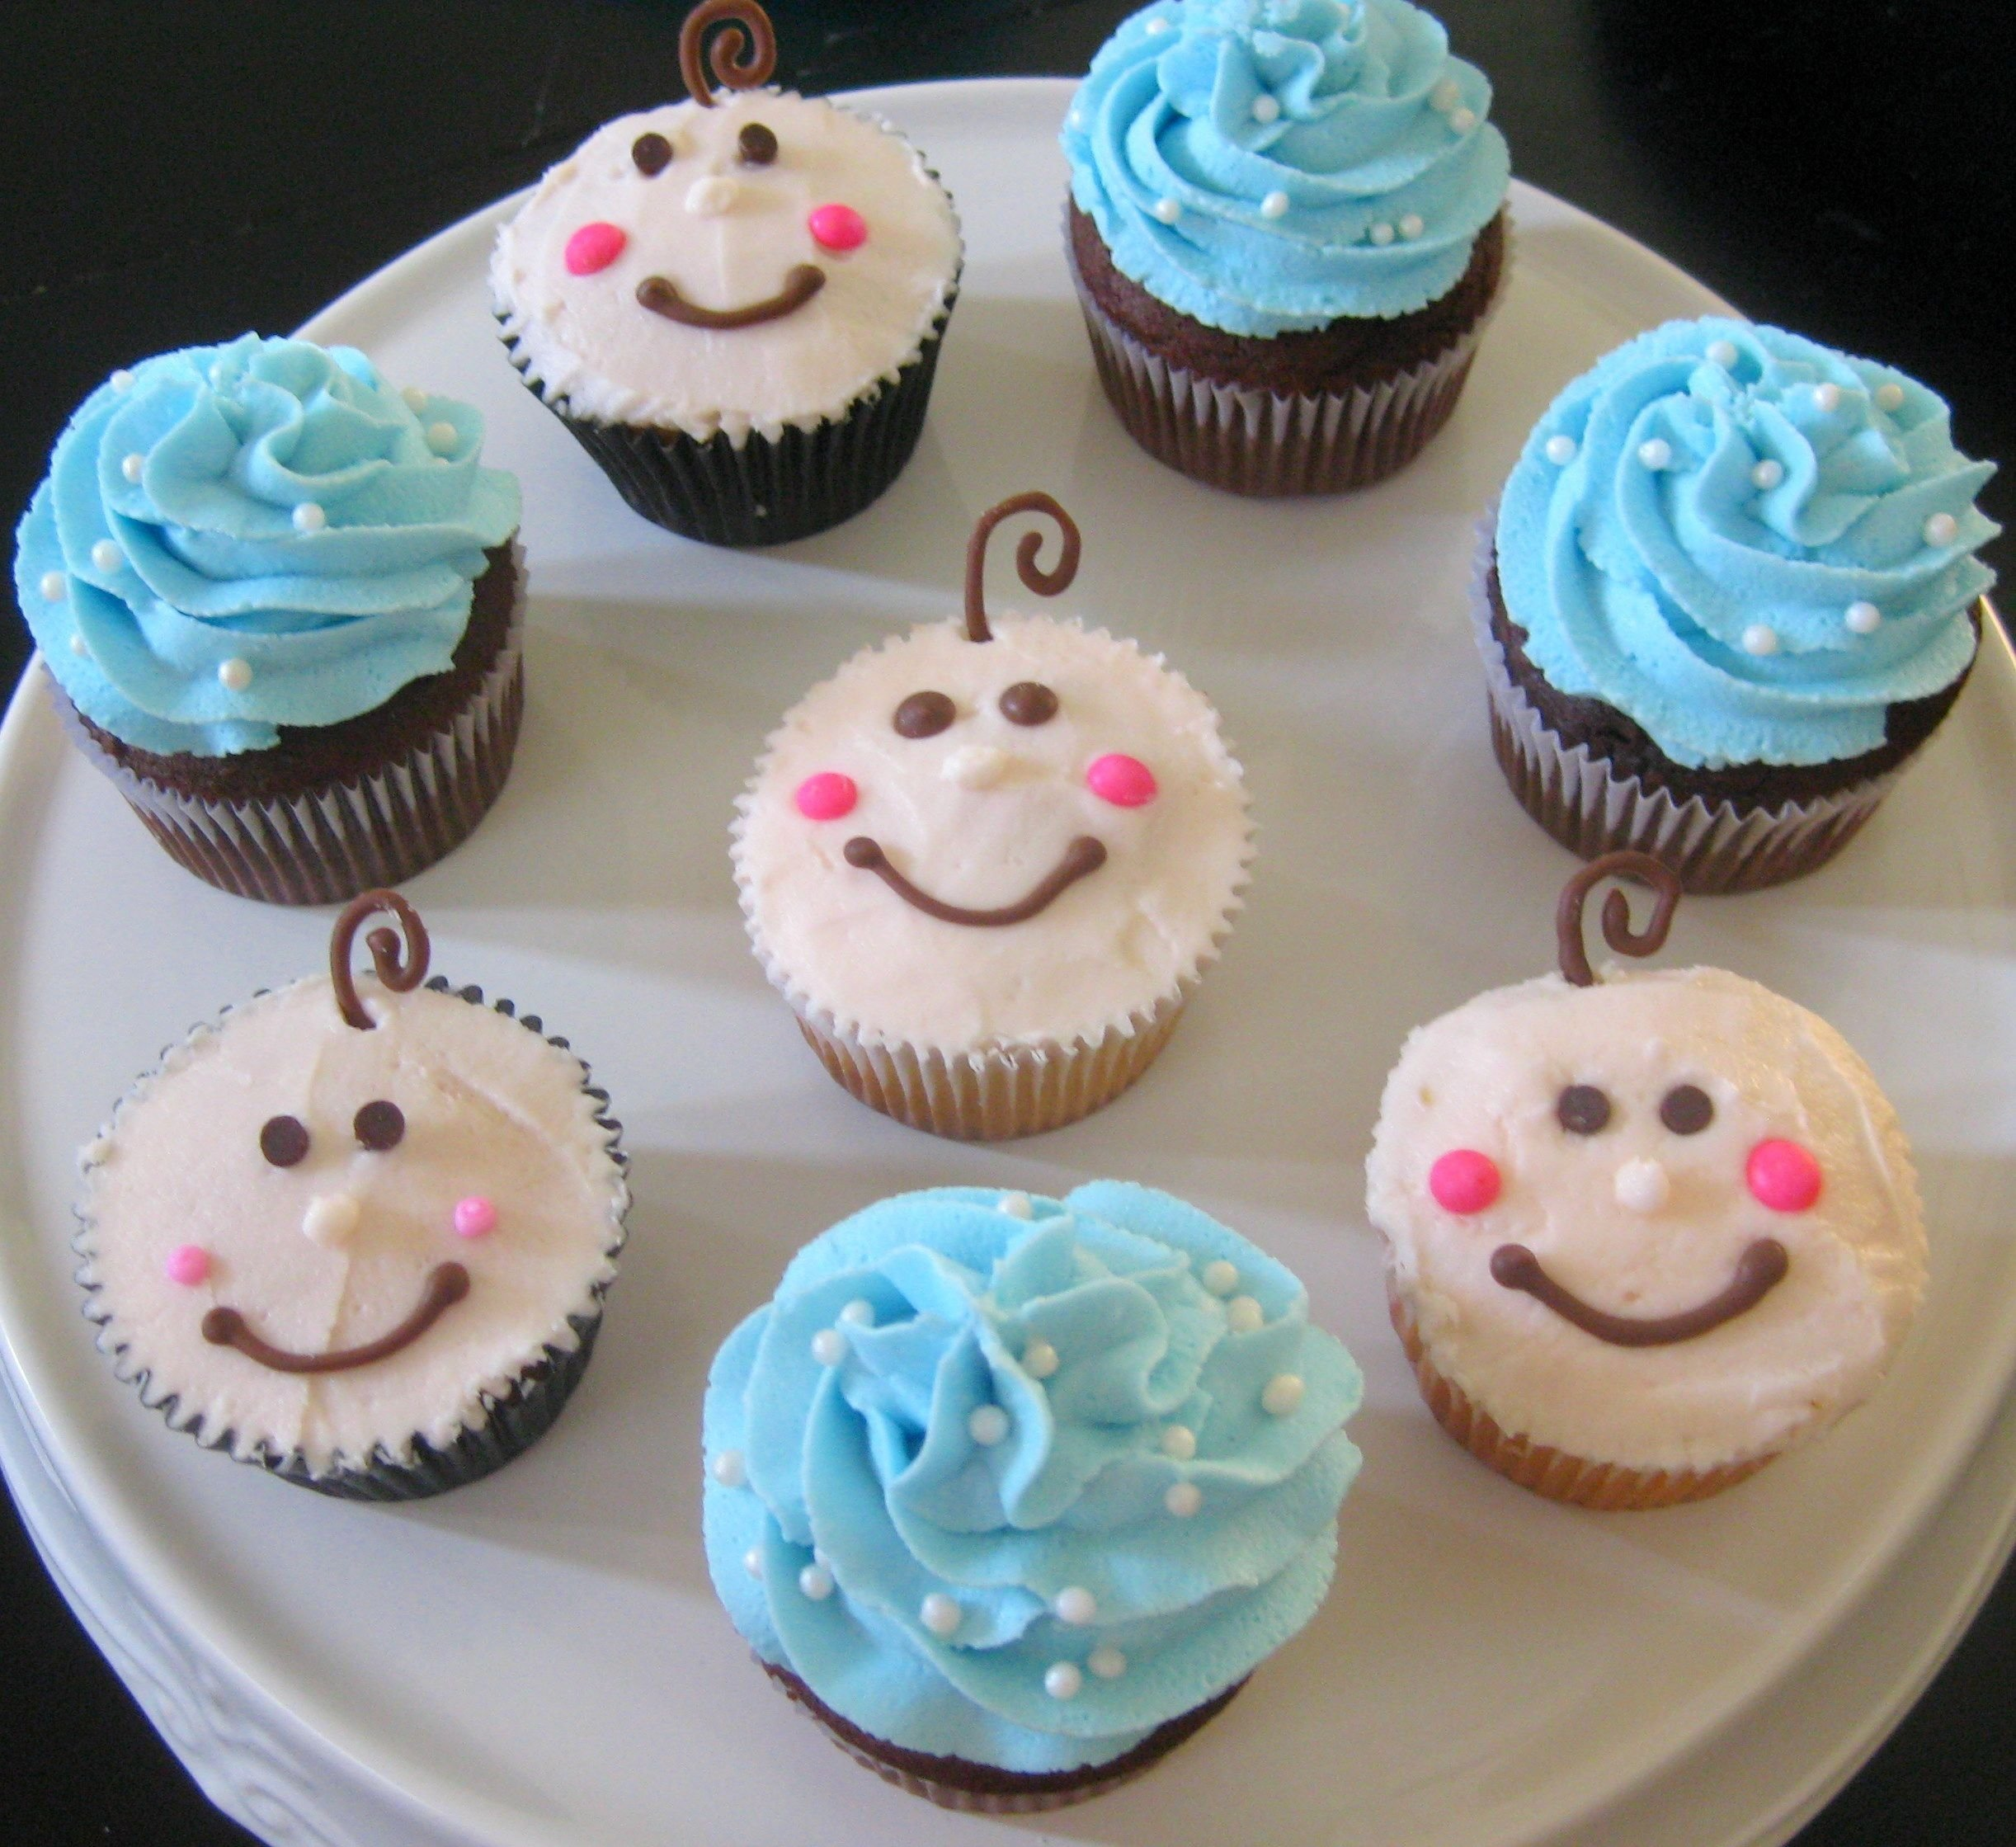 10 Famous Baby Shower Cupcake Decorating Ideas cute baby shower cupcakes for boys baby shower cake pinterest 2021